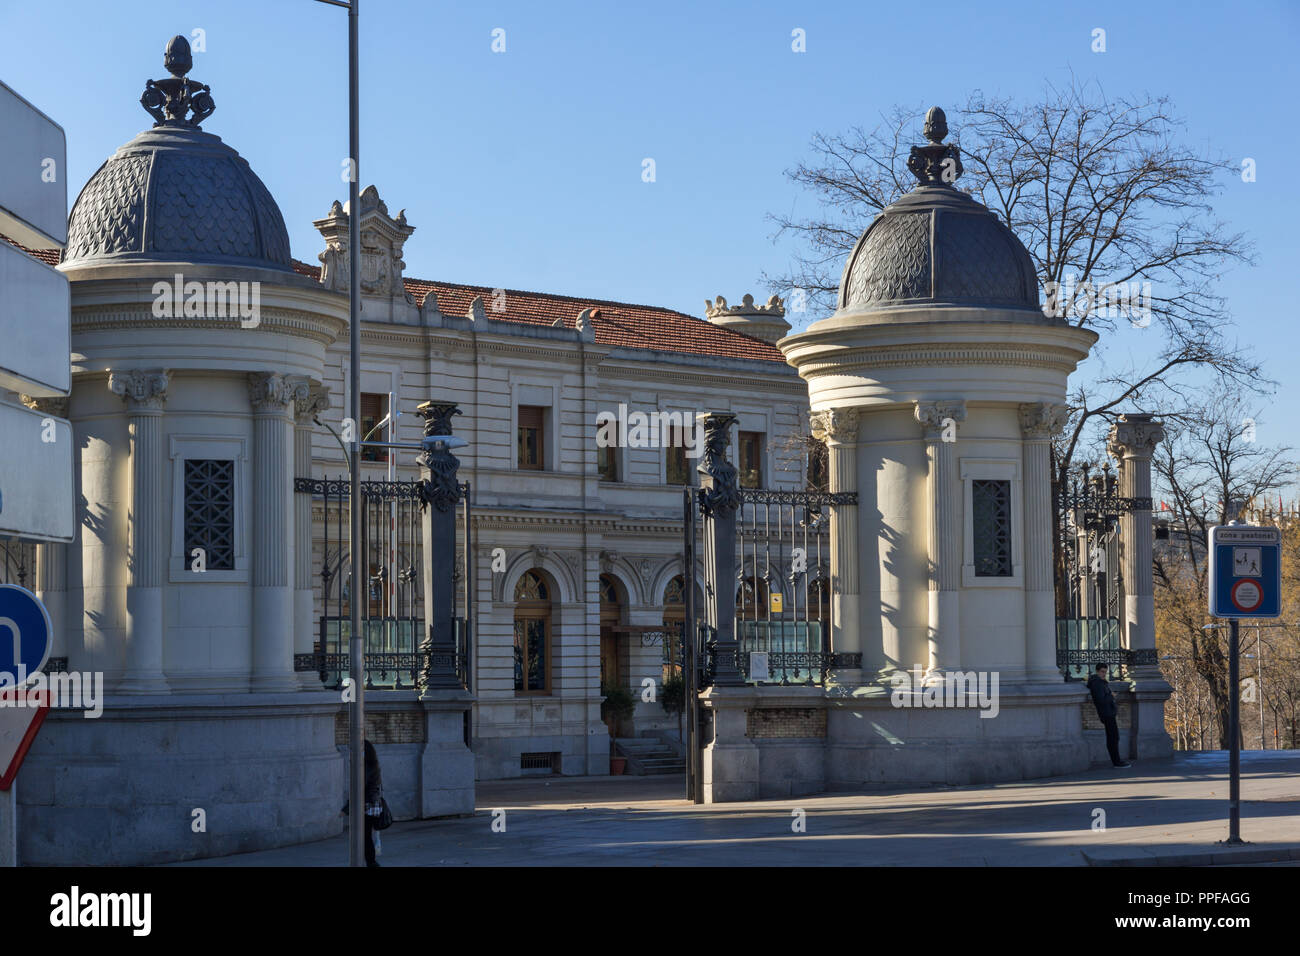 MADRID, SPAIN - JANUARY 22, 2018:  Building of Ministry of agriculture in City of Madrid, Spain Stock Photo